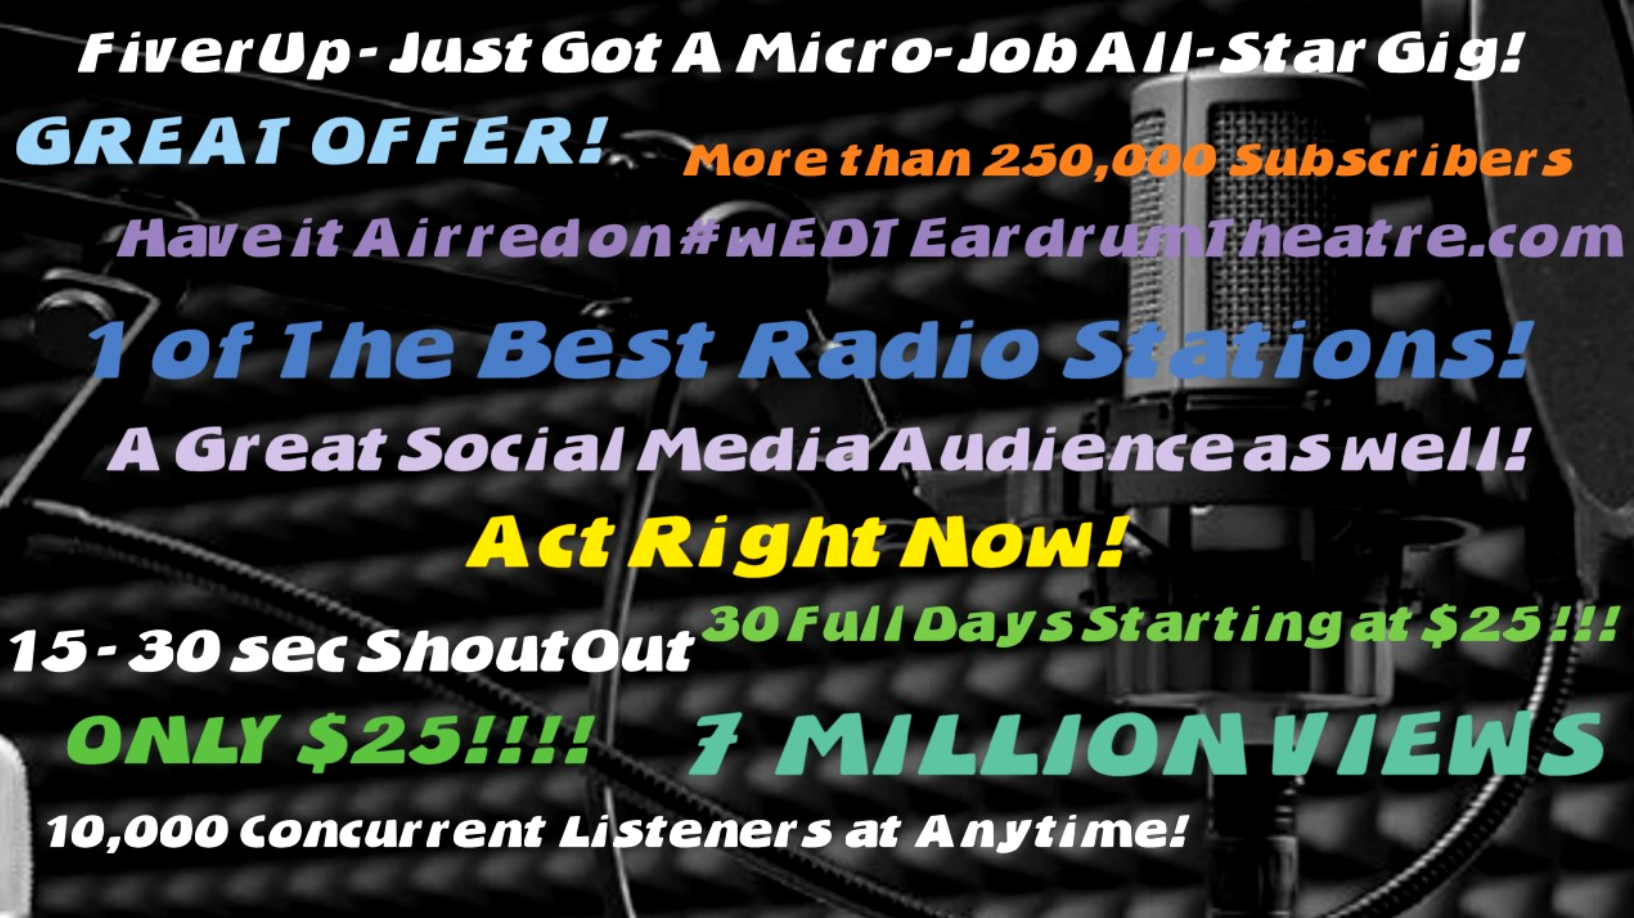 record and air your shoutout or Ad on the radio for 30 days